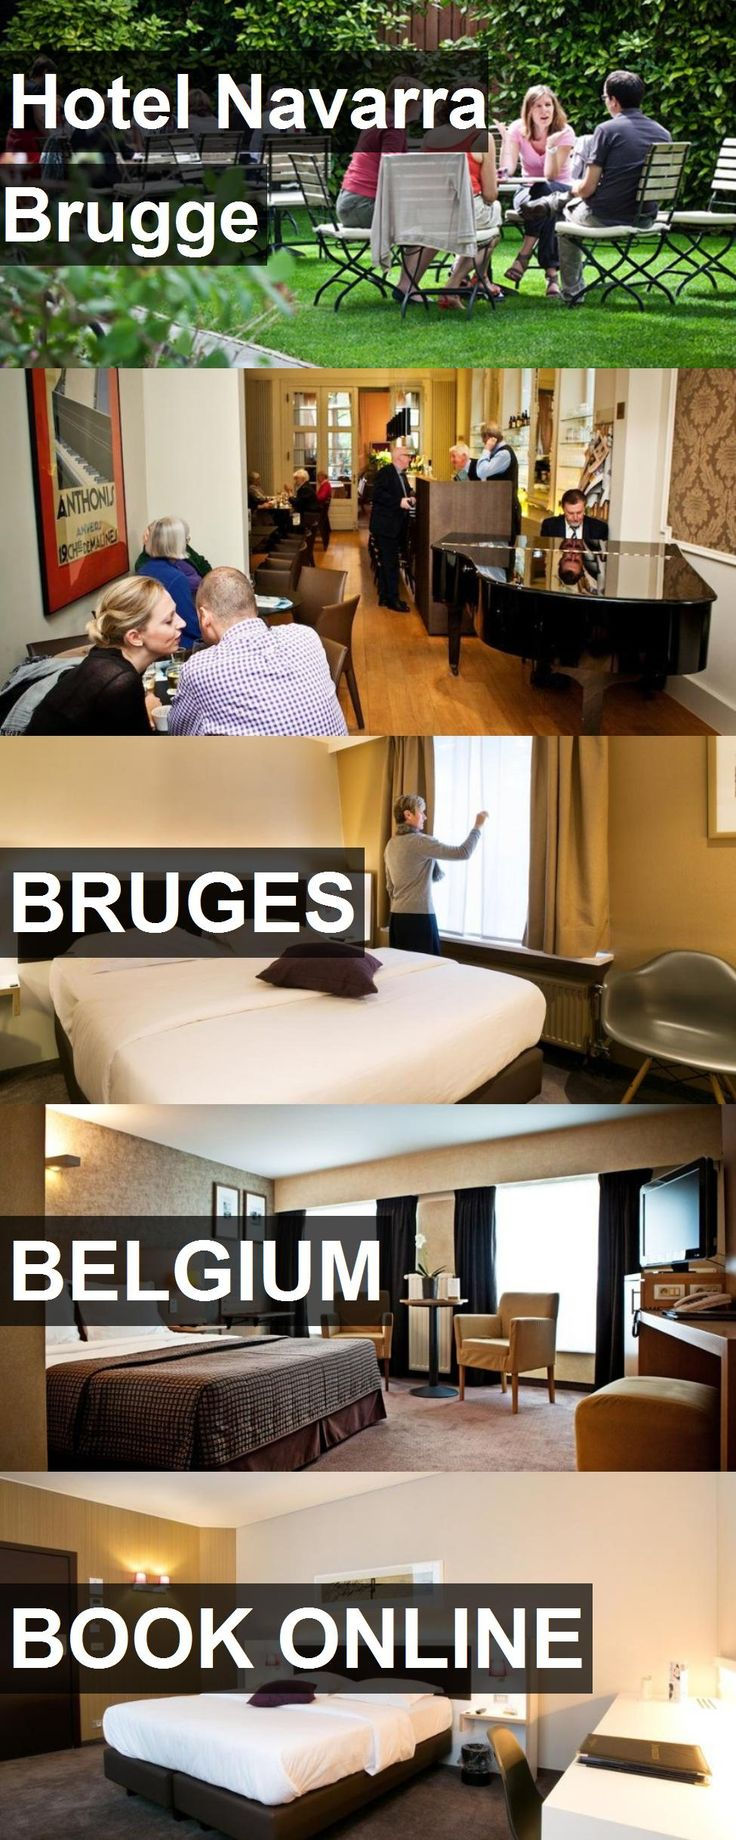 Hotel Hotel Navarra Brugge in Bruges, Belgium. For more information, photos, reviews and best prices please follow the link. #Belgium #Bruges #HotelNavarraBrugge #hotel #travel #vacation